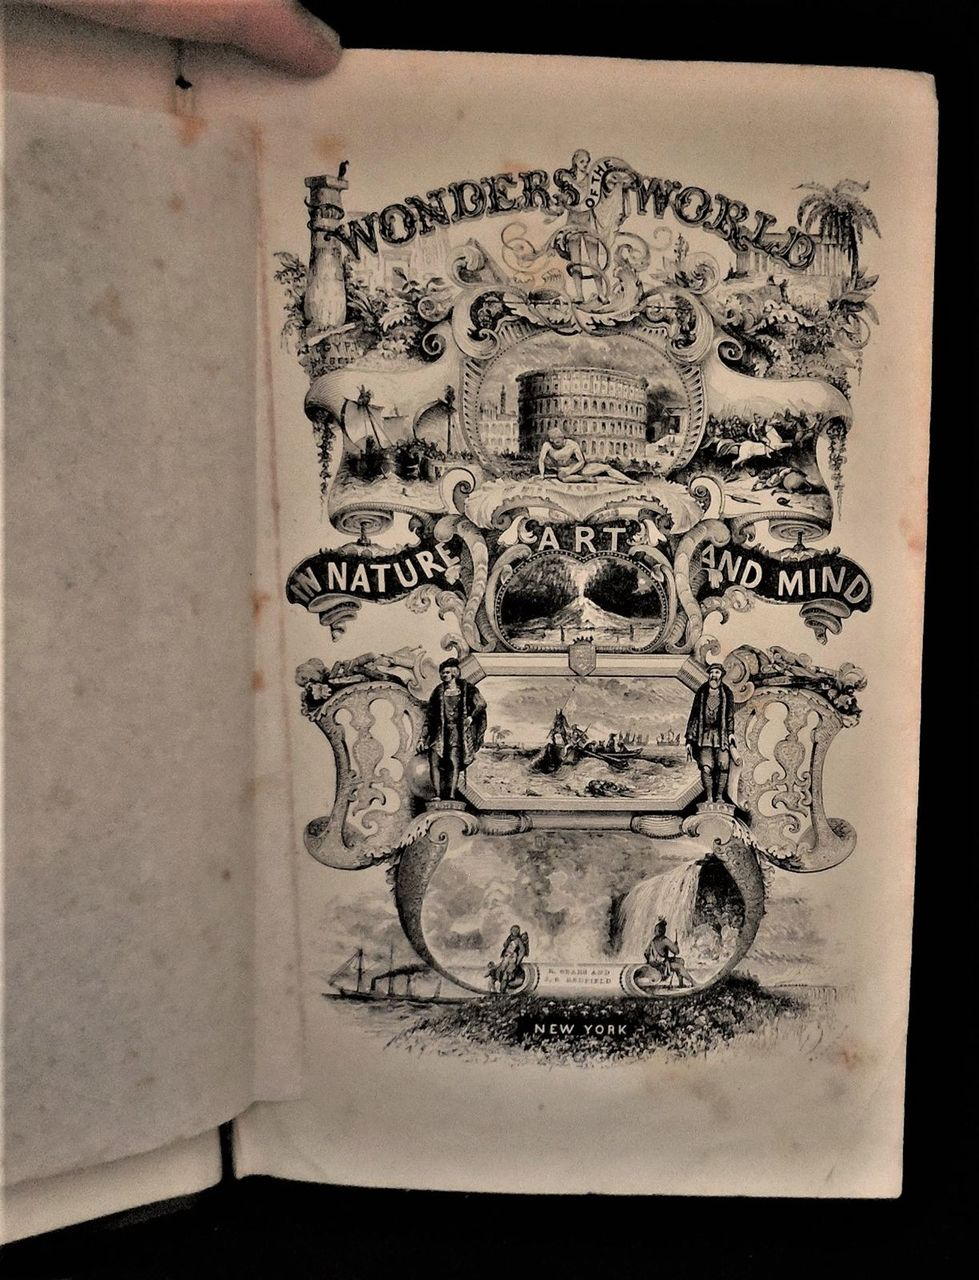 THE WONDERS OF THE WORLD, by Robert Sears - 1843